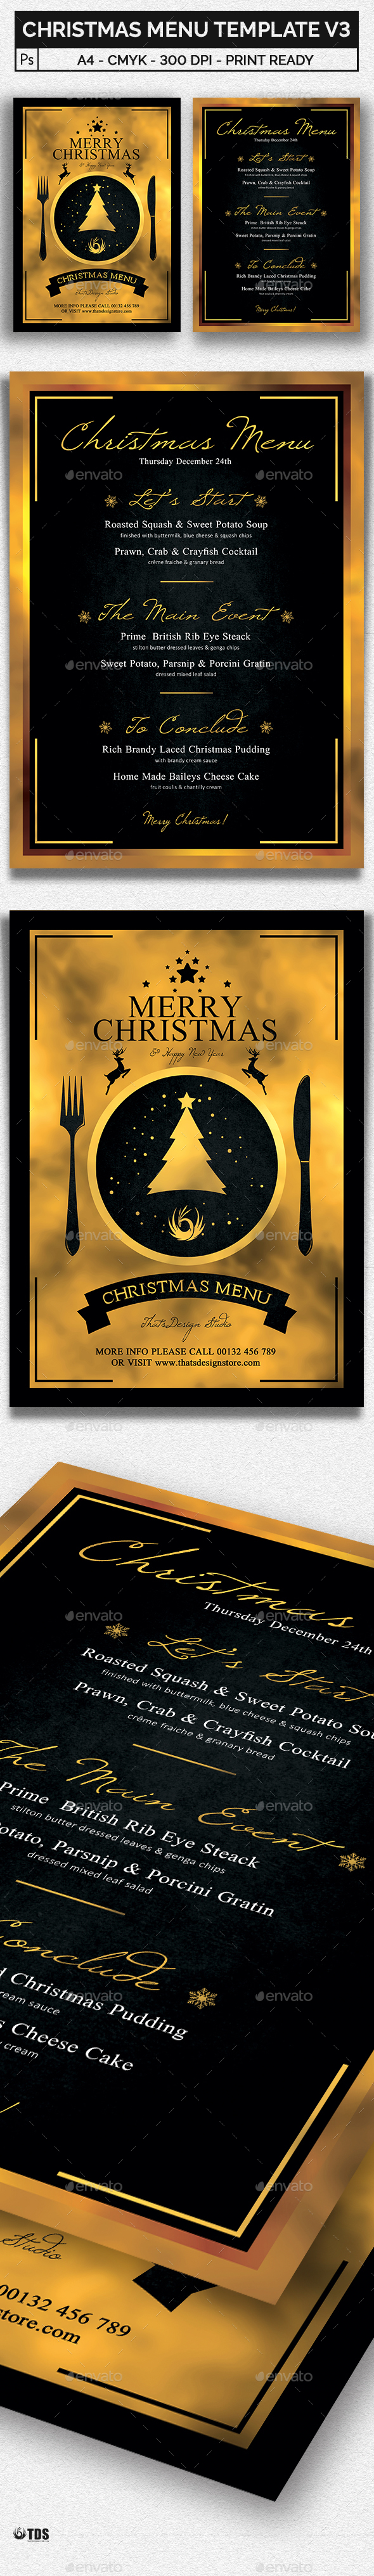 Christmas Menu Template V3